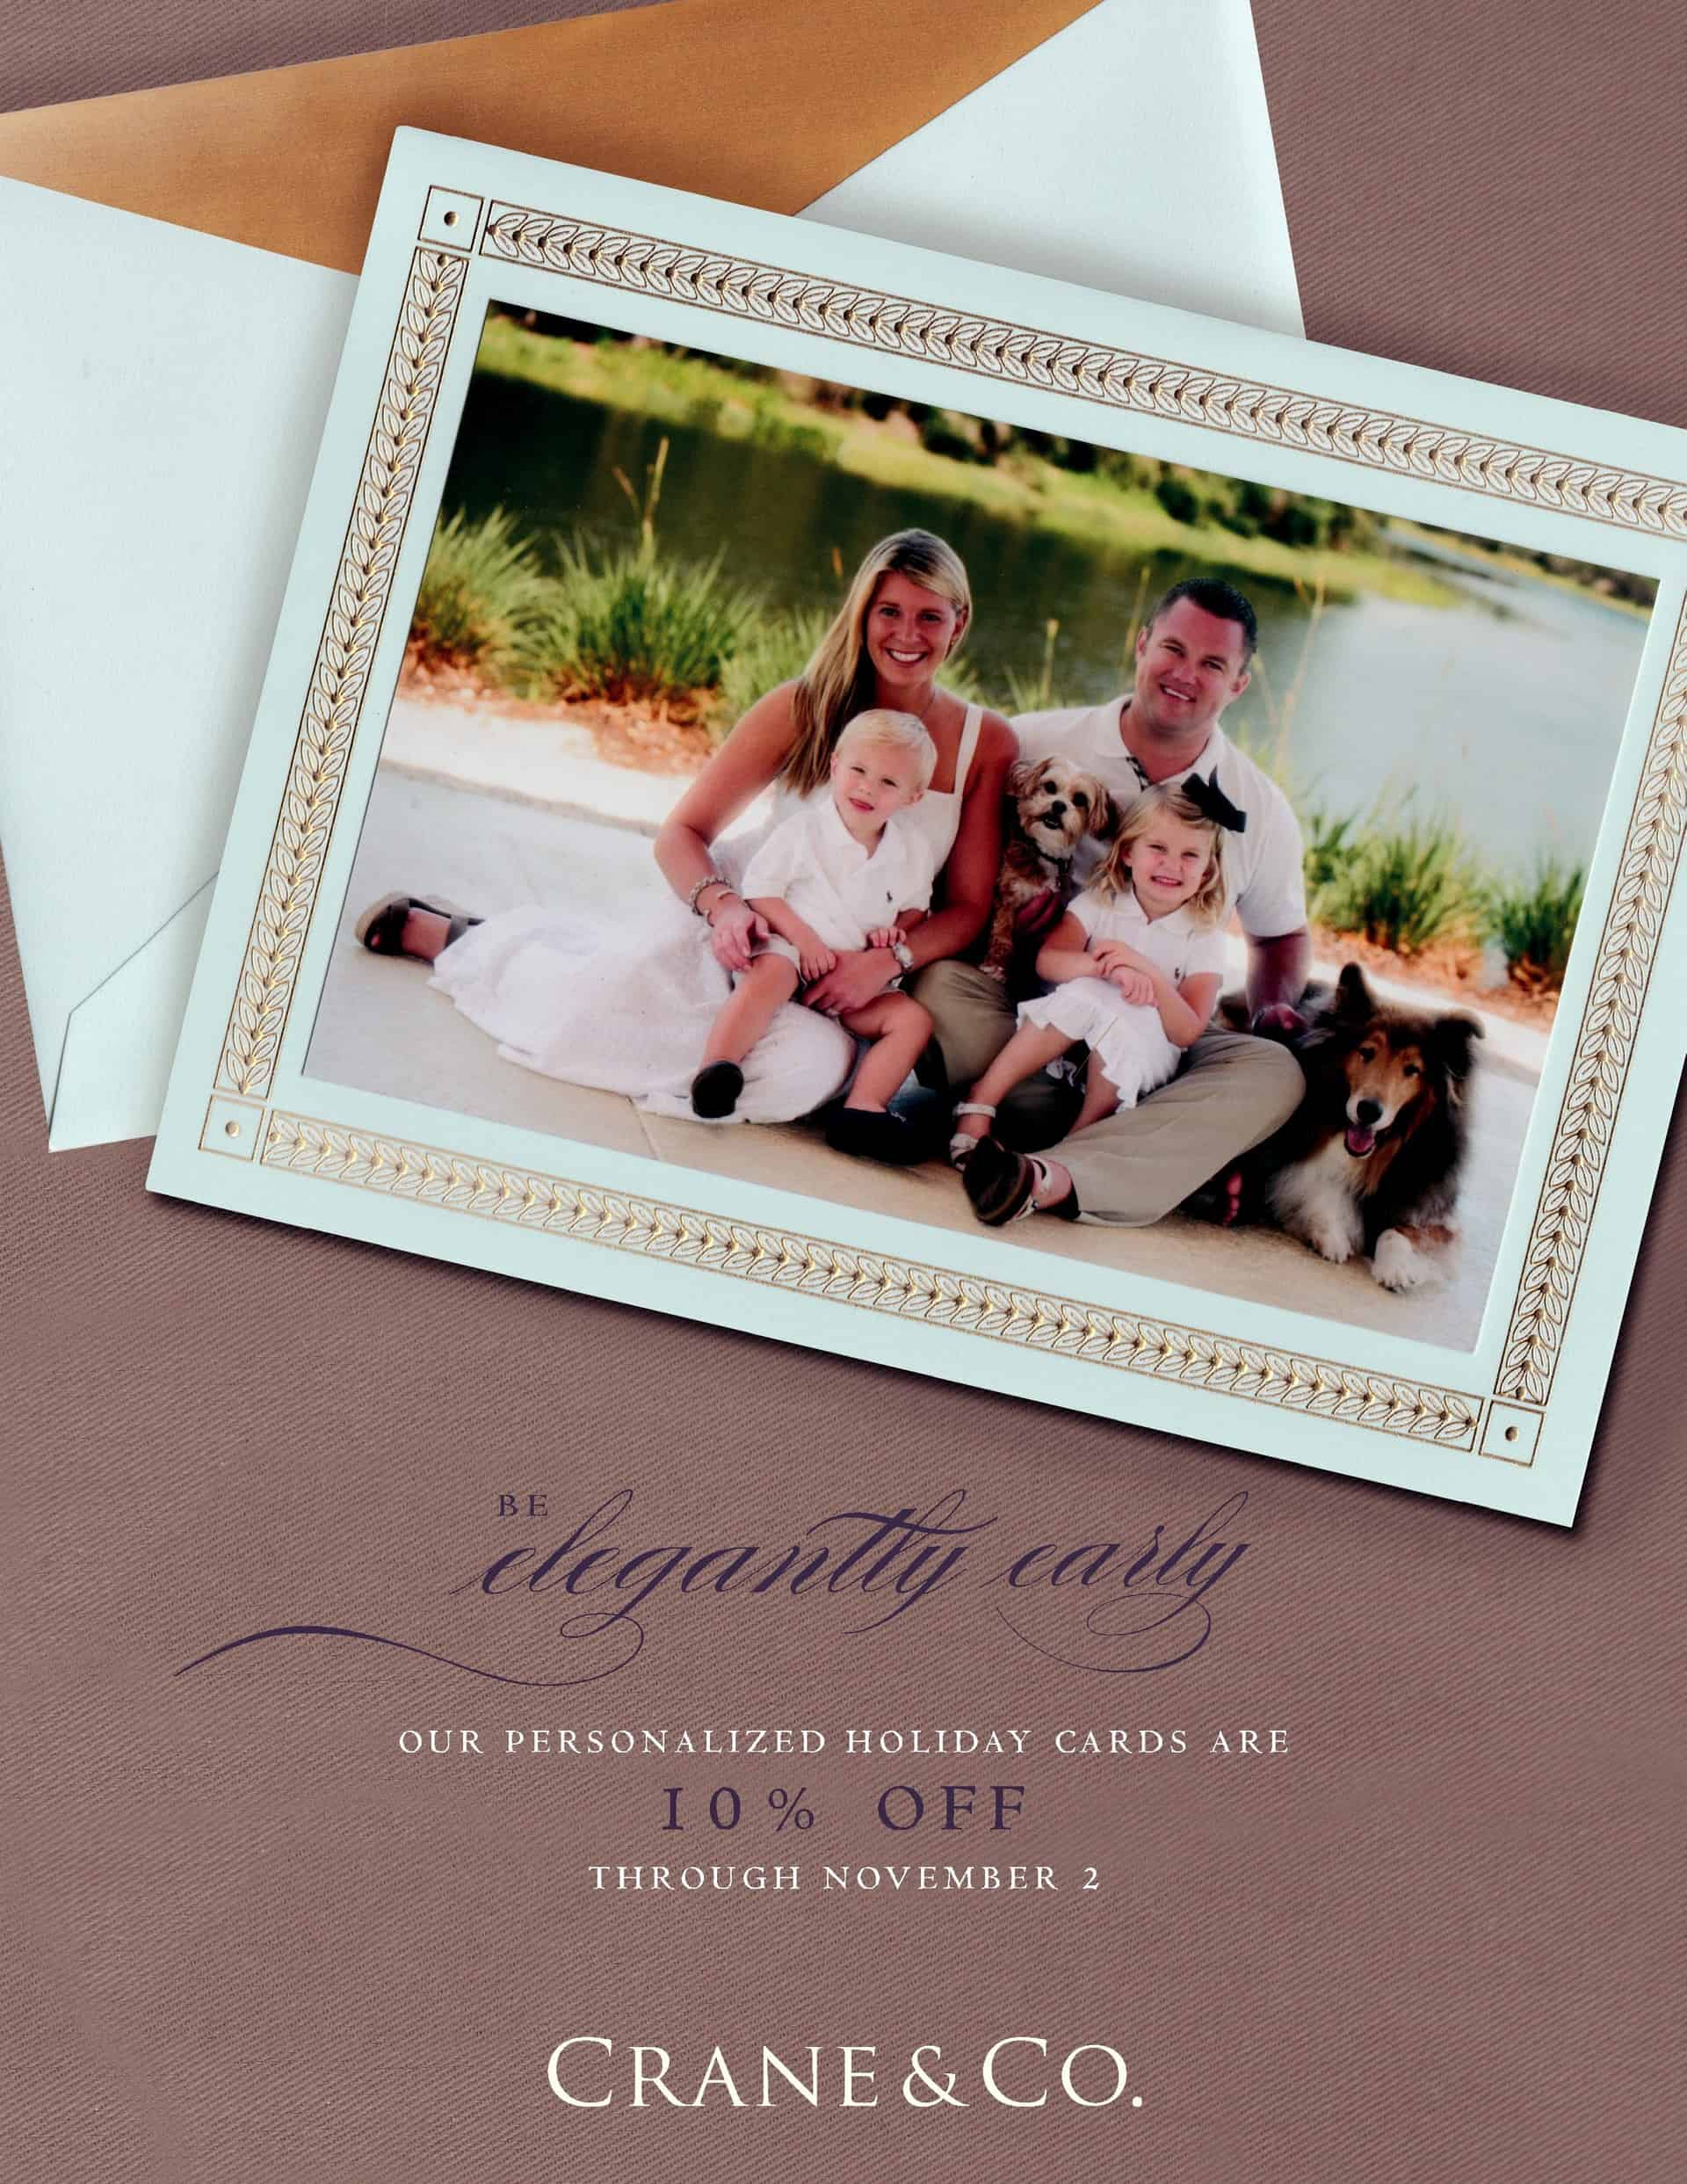 Crane & Co. personalized holiday card promotion